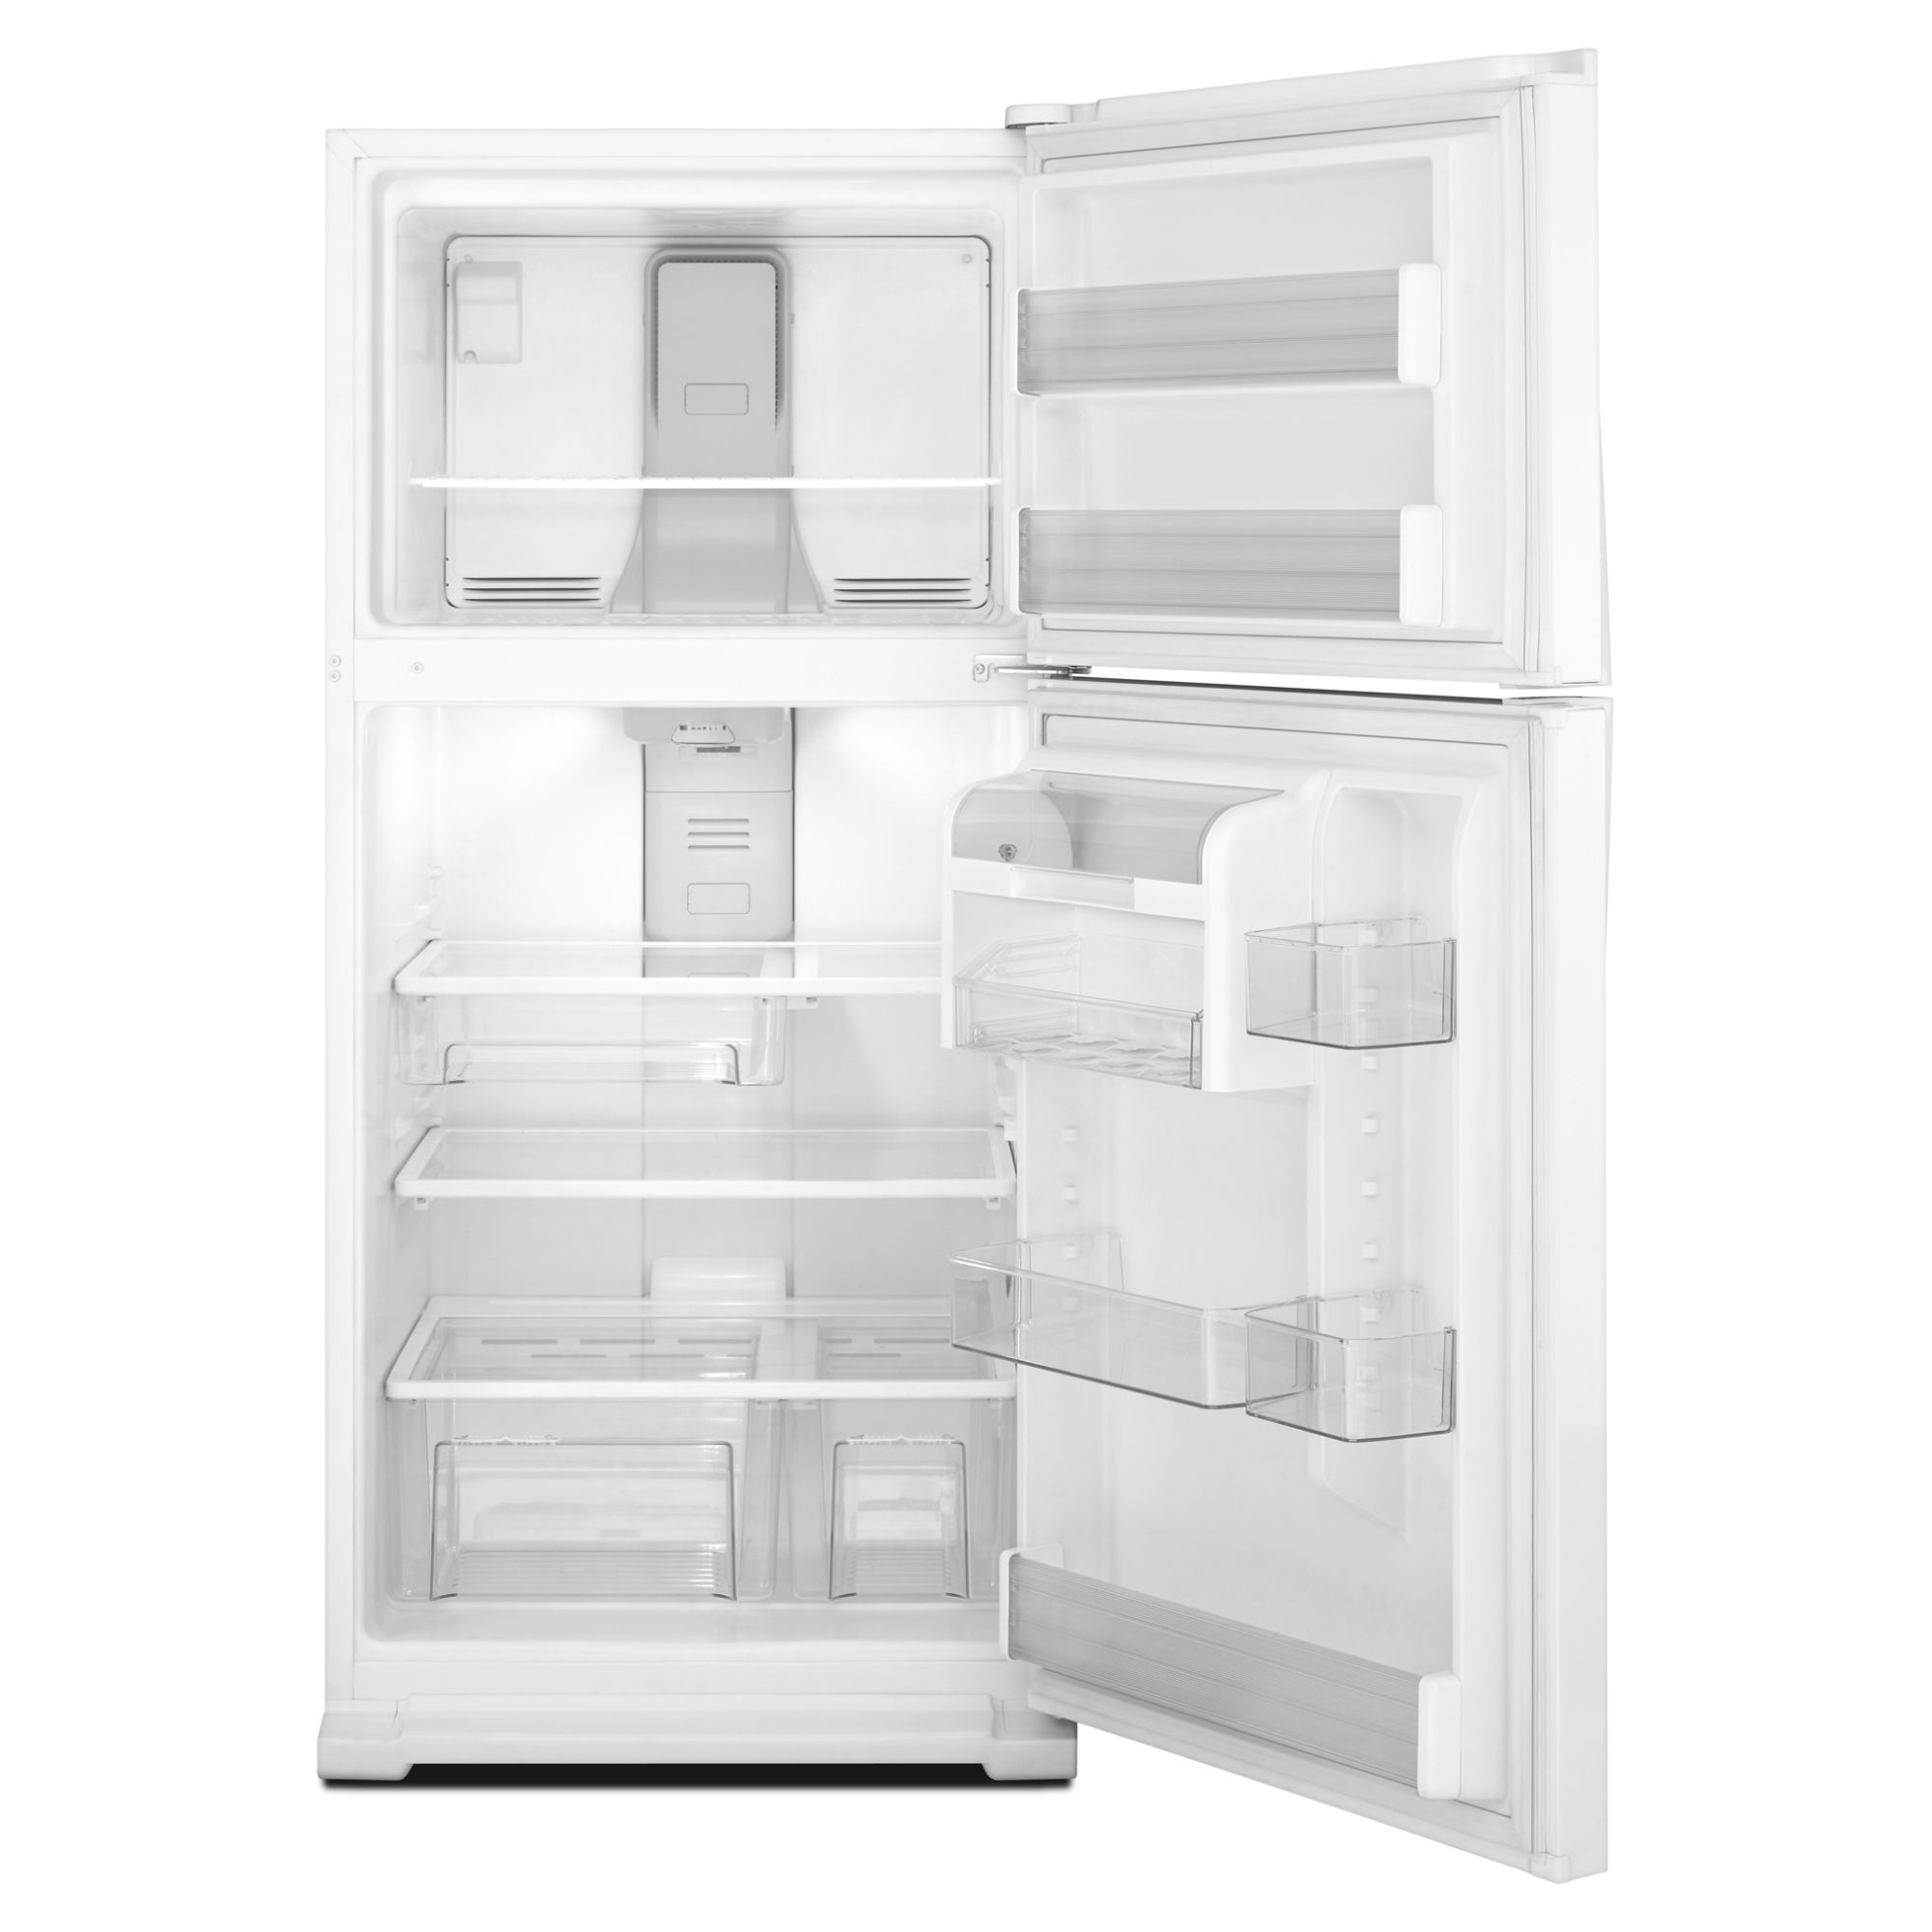 Whirlpool 21 cu. ft. Top-Freezer Refrigerator w/ Condiment Caddy - White